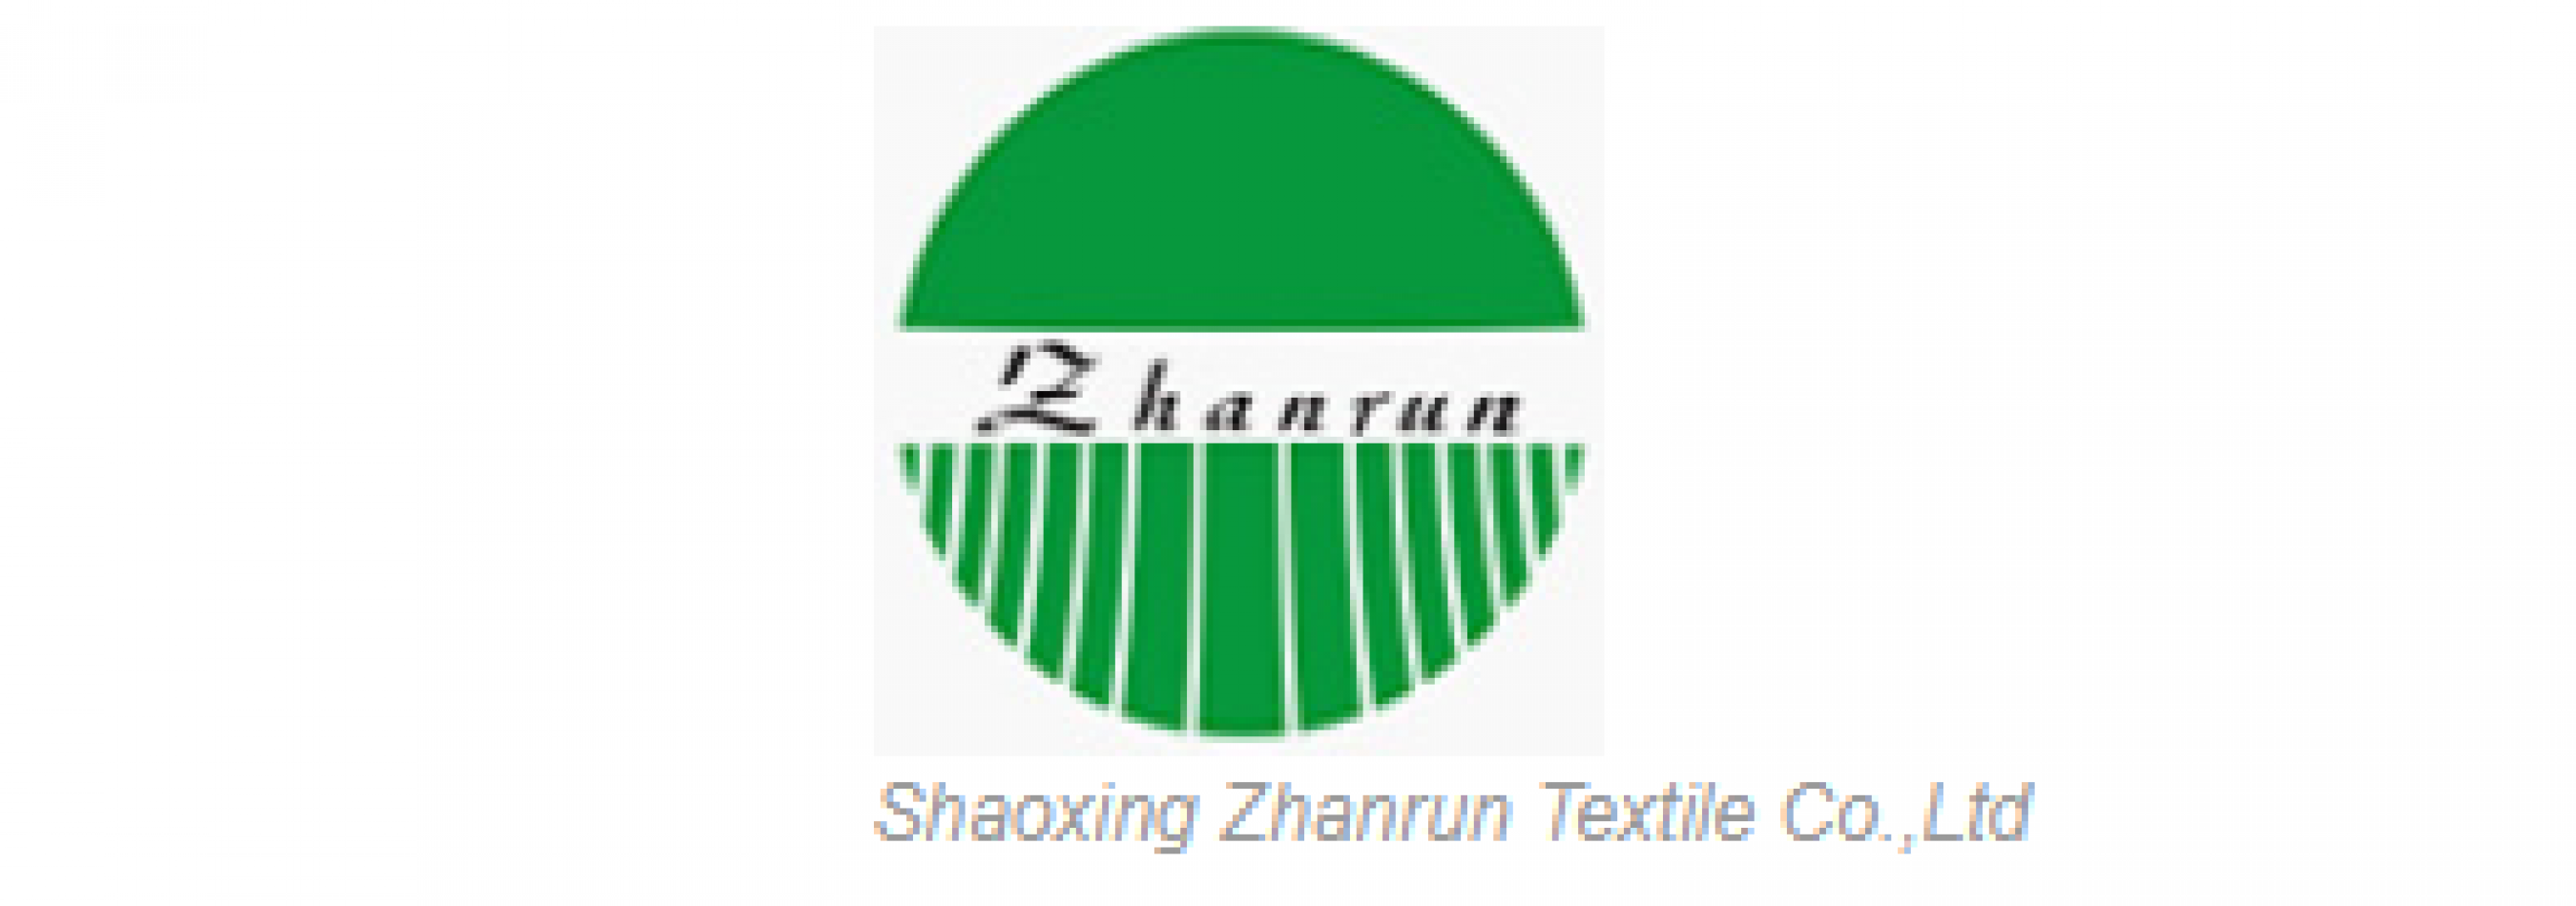 Shaoxing Zhanrun Textile Co., Ltd.